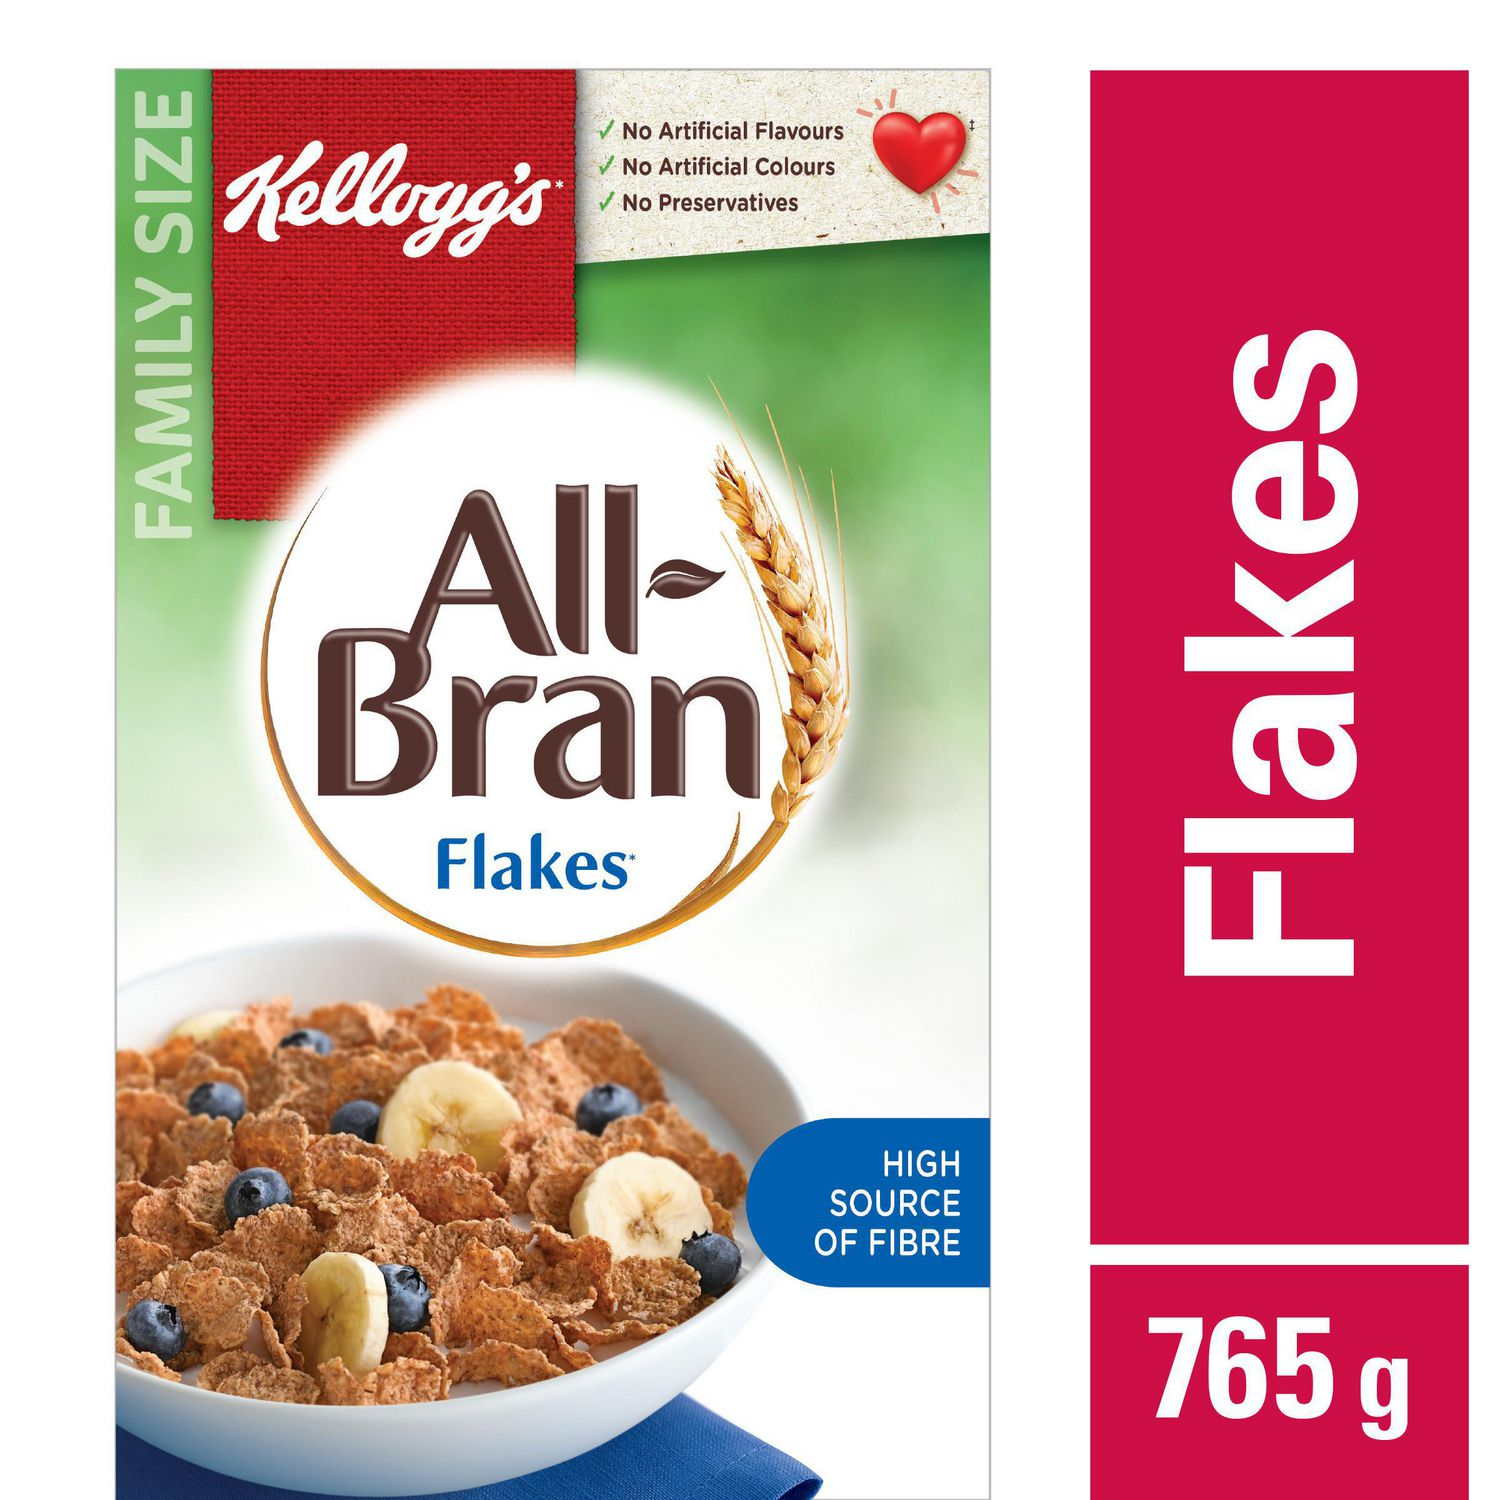 Kellogg's All-Bran Flakes Cereal, 765g